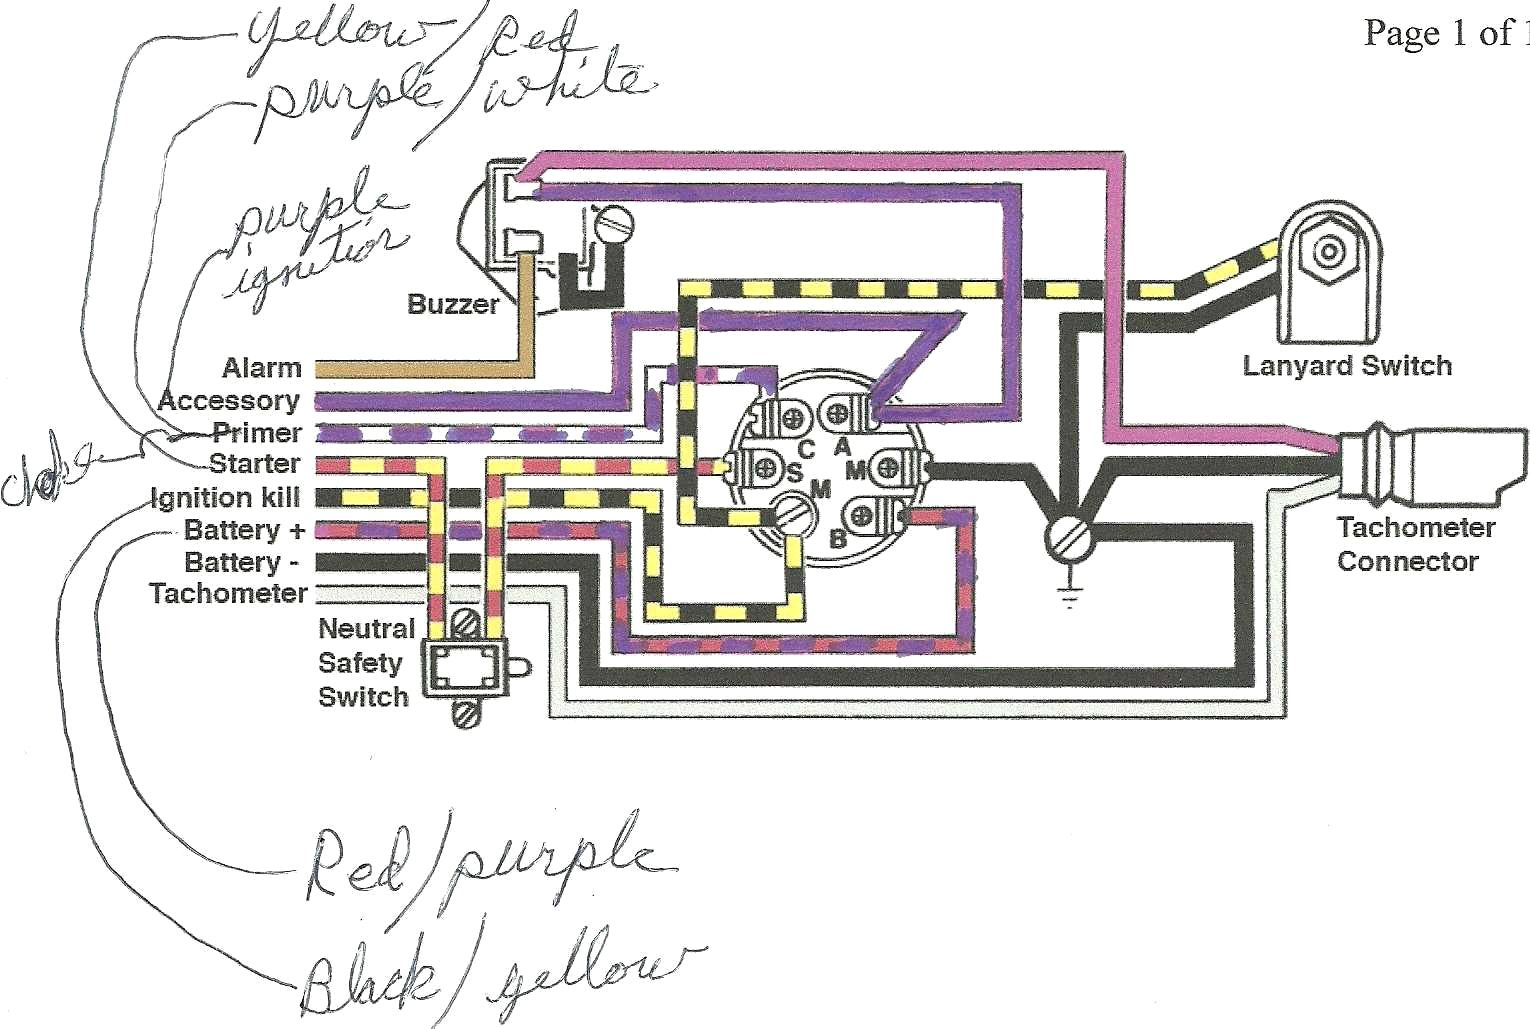 keyed ignition switch wiring wiring diagram terex ignition switch wiring diagram [ 1530 x 1029 Pixel ]